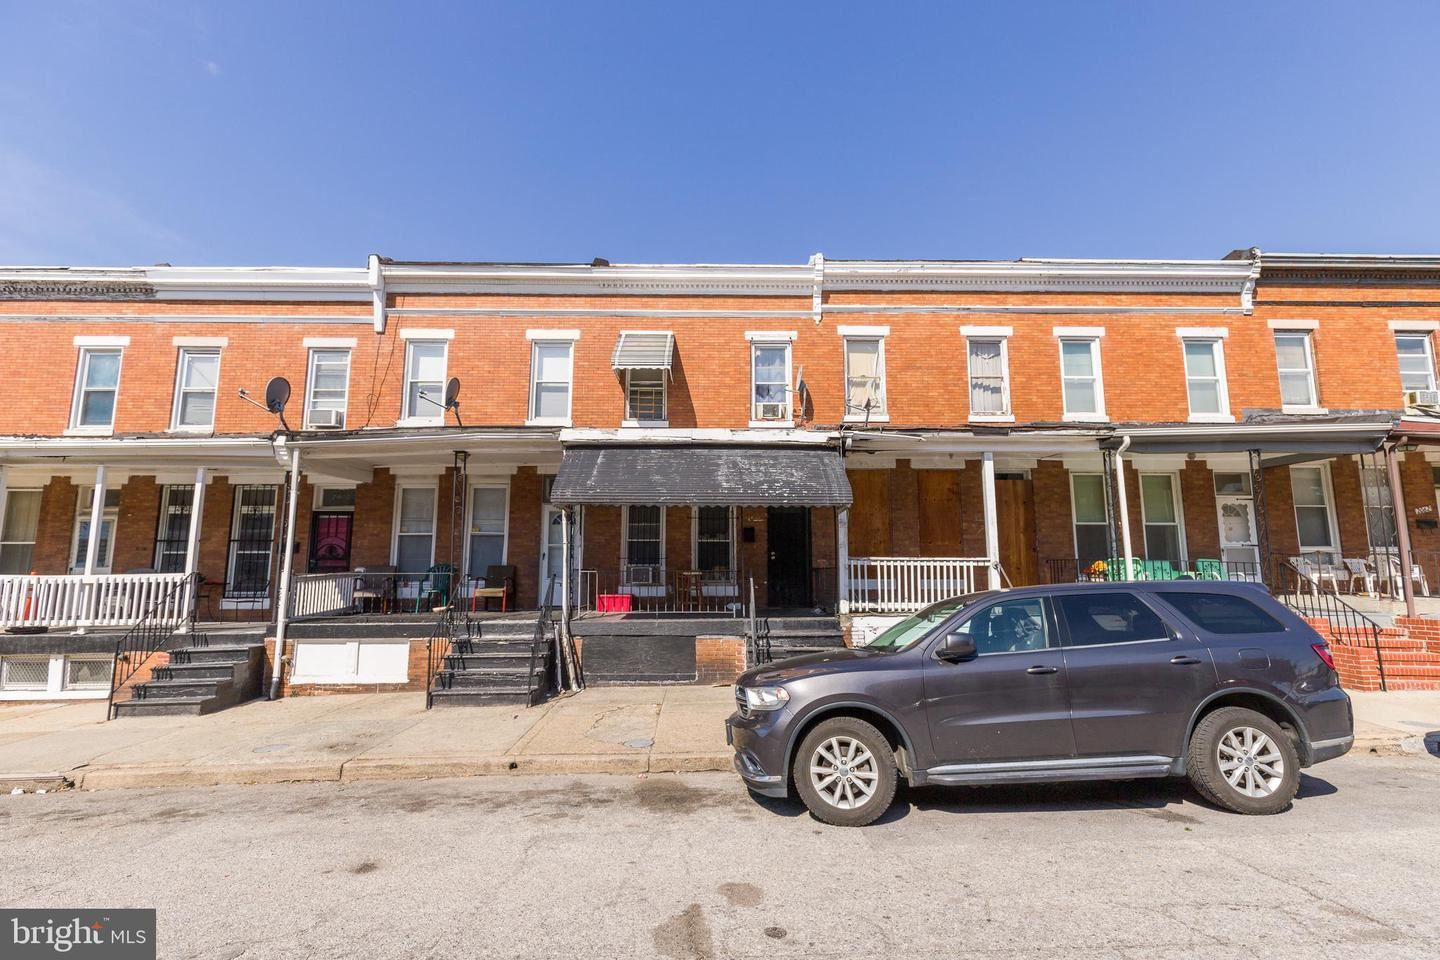 2056 KENNEDY AVE, Baltimore, MD 21218 - MLS#: MDBA543144